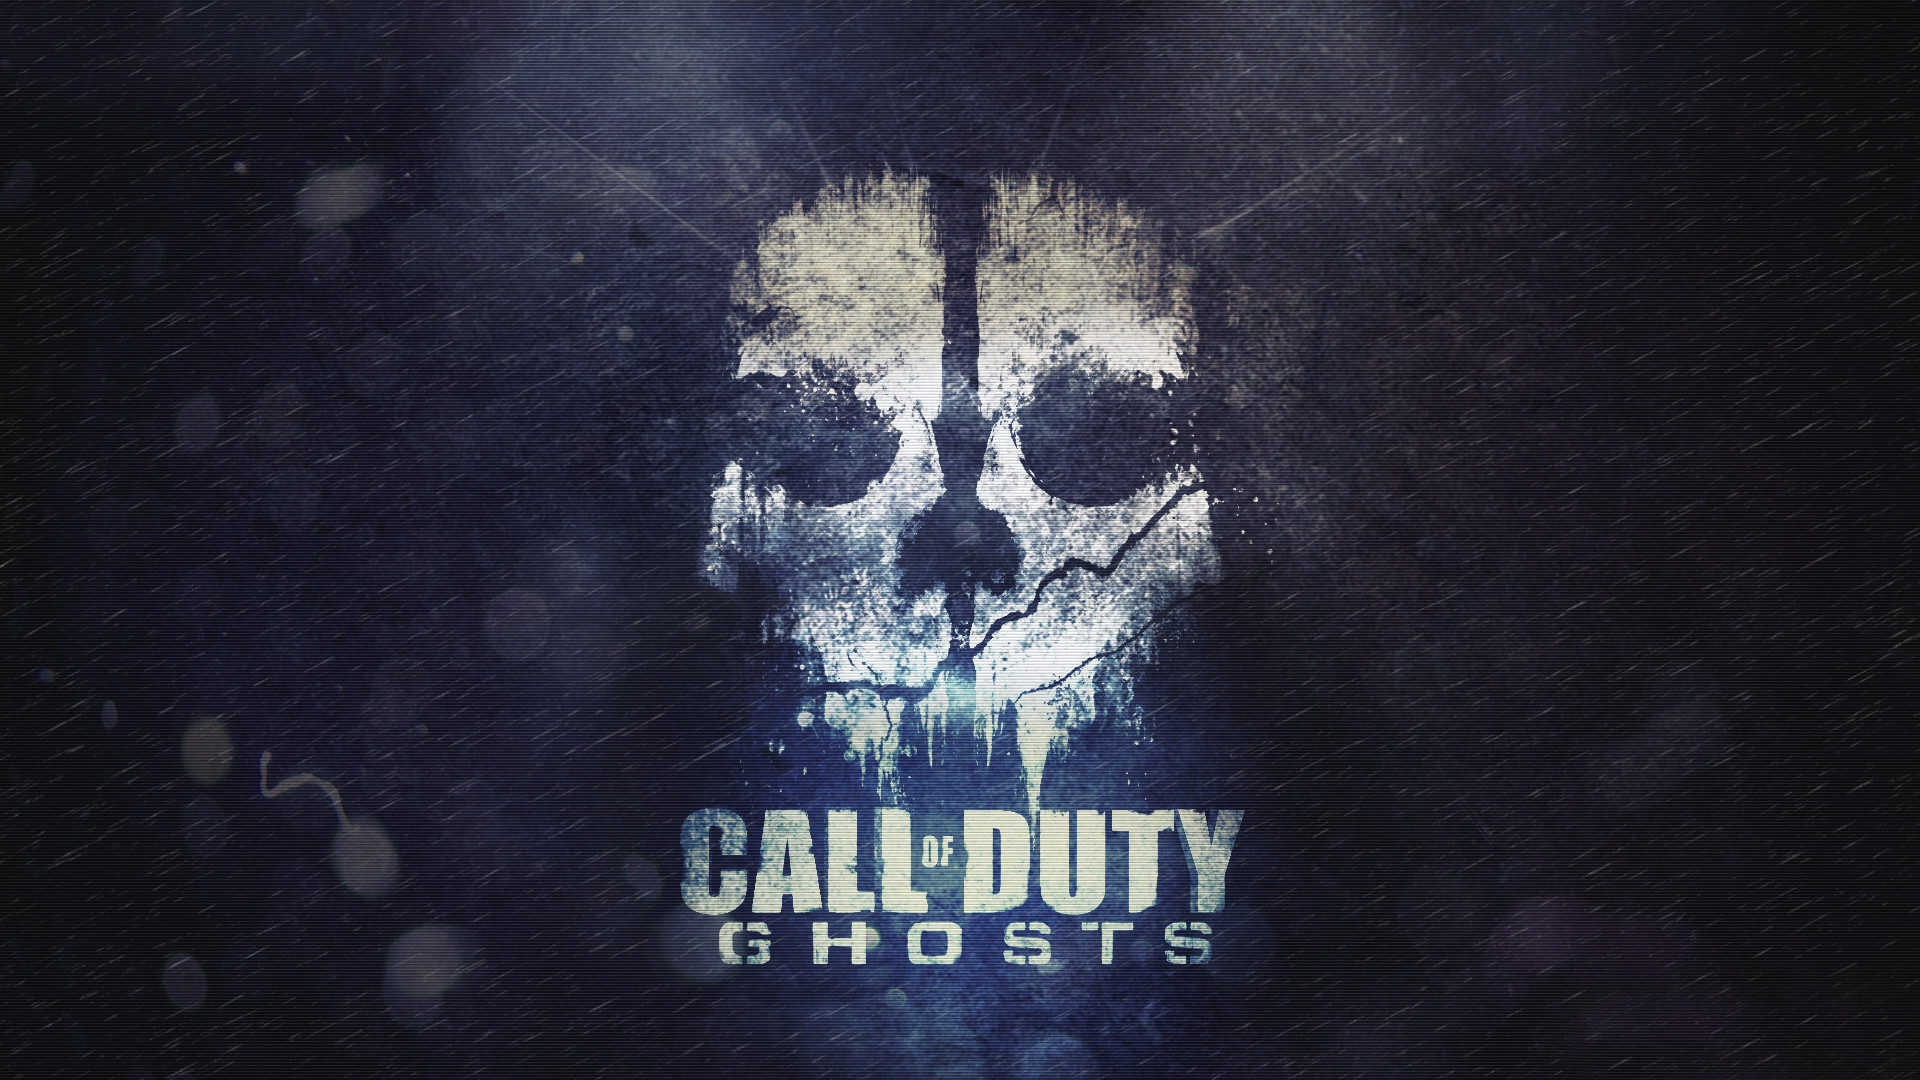 Call of Duty: Ghosts Wallpapers   GamersTarget